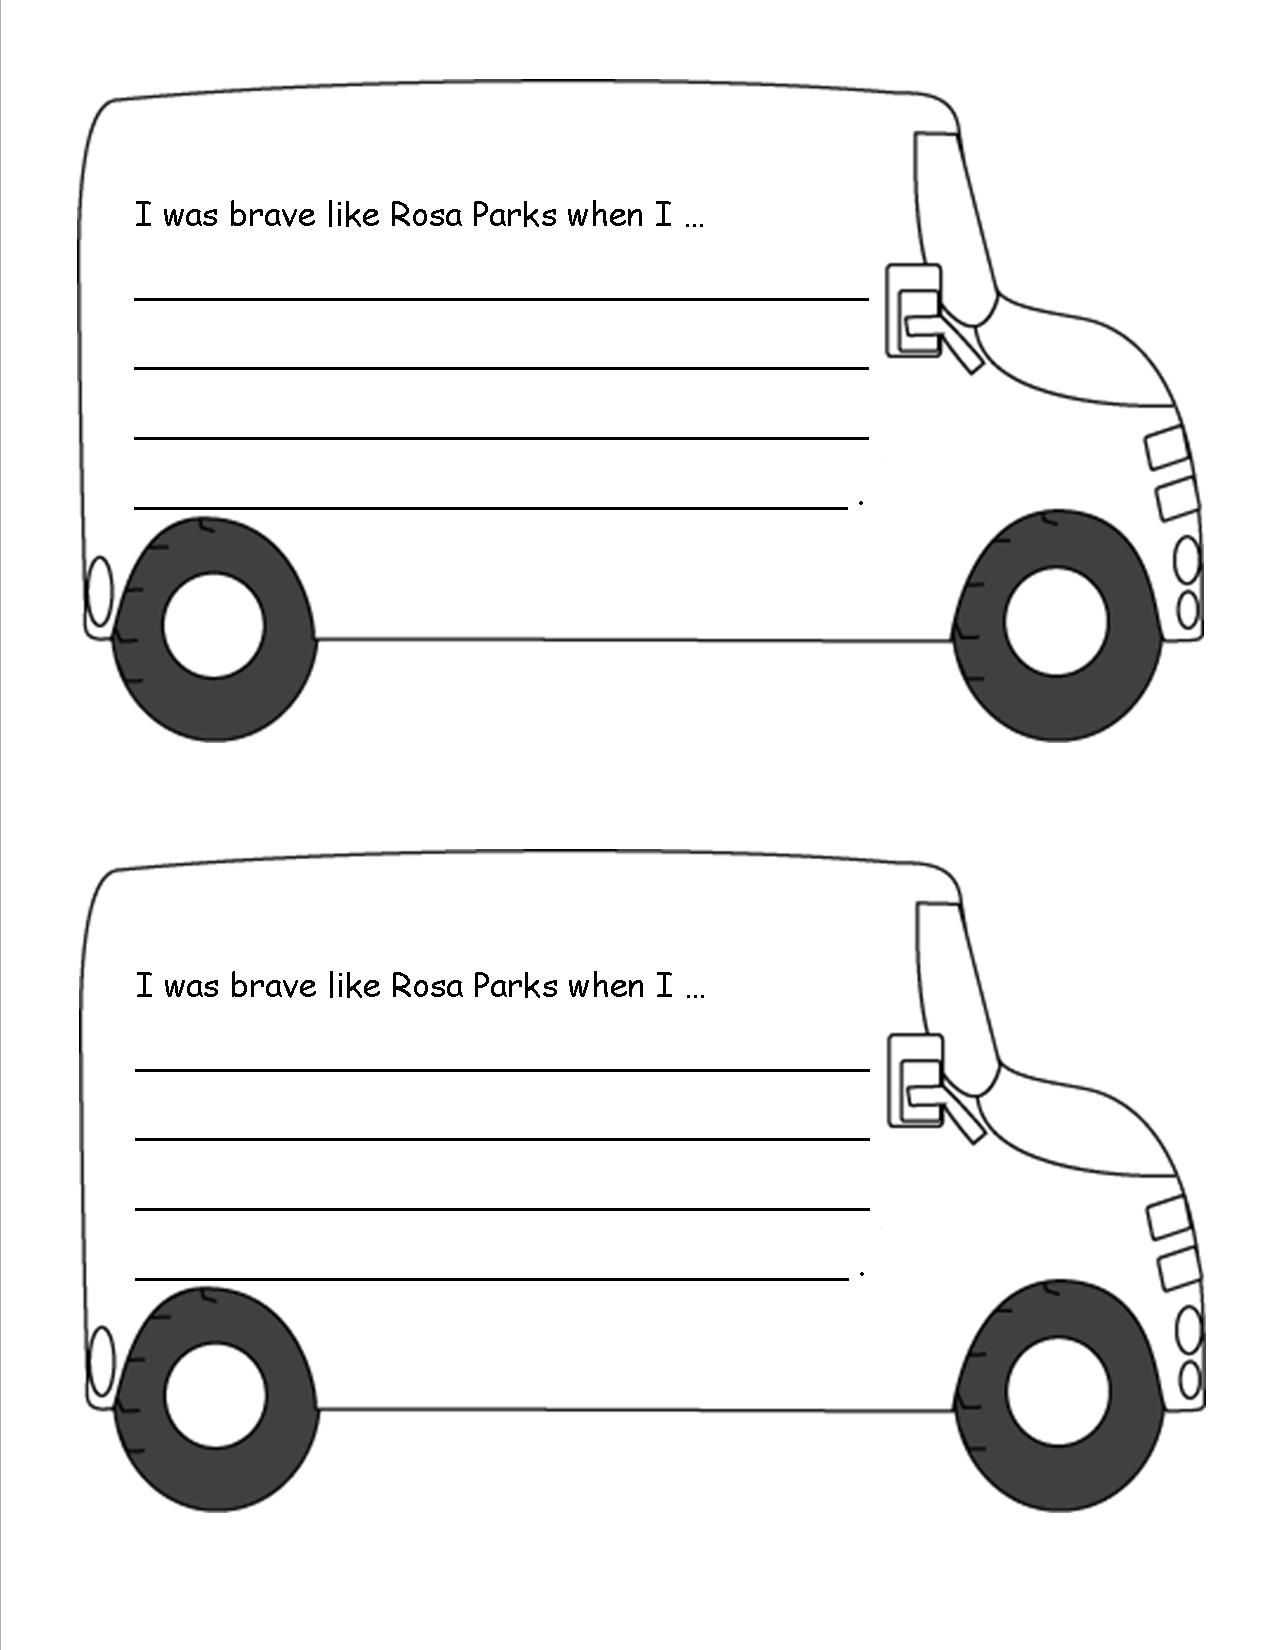 Reading Like A Historian Worksheet Answers Also Rosa Parks Worksheet This Activity is Great for Students Learning